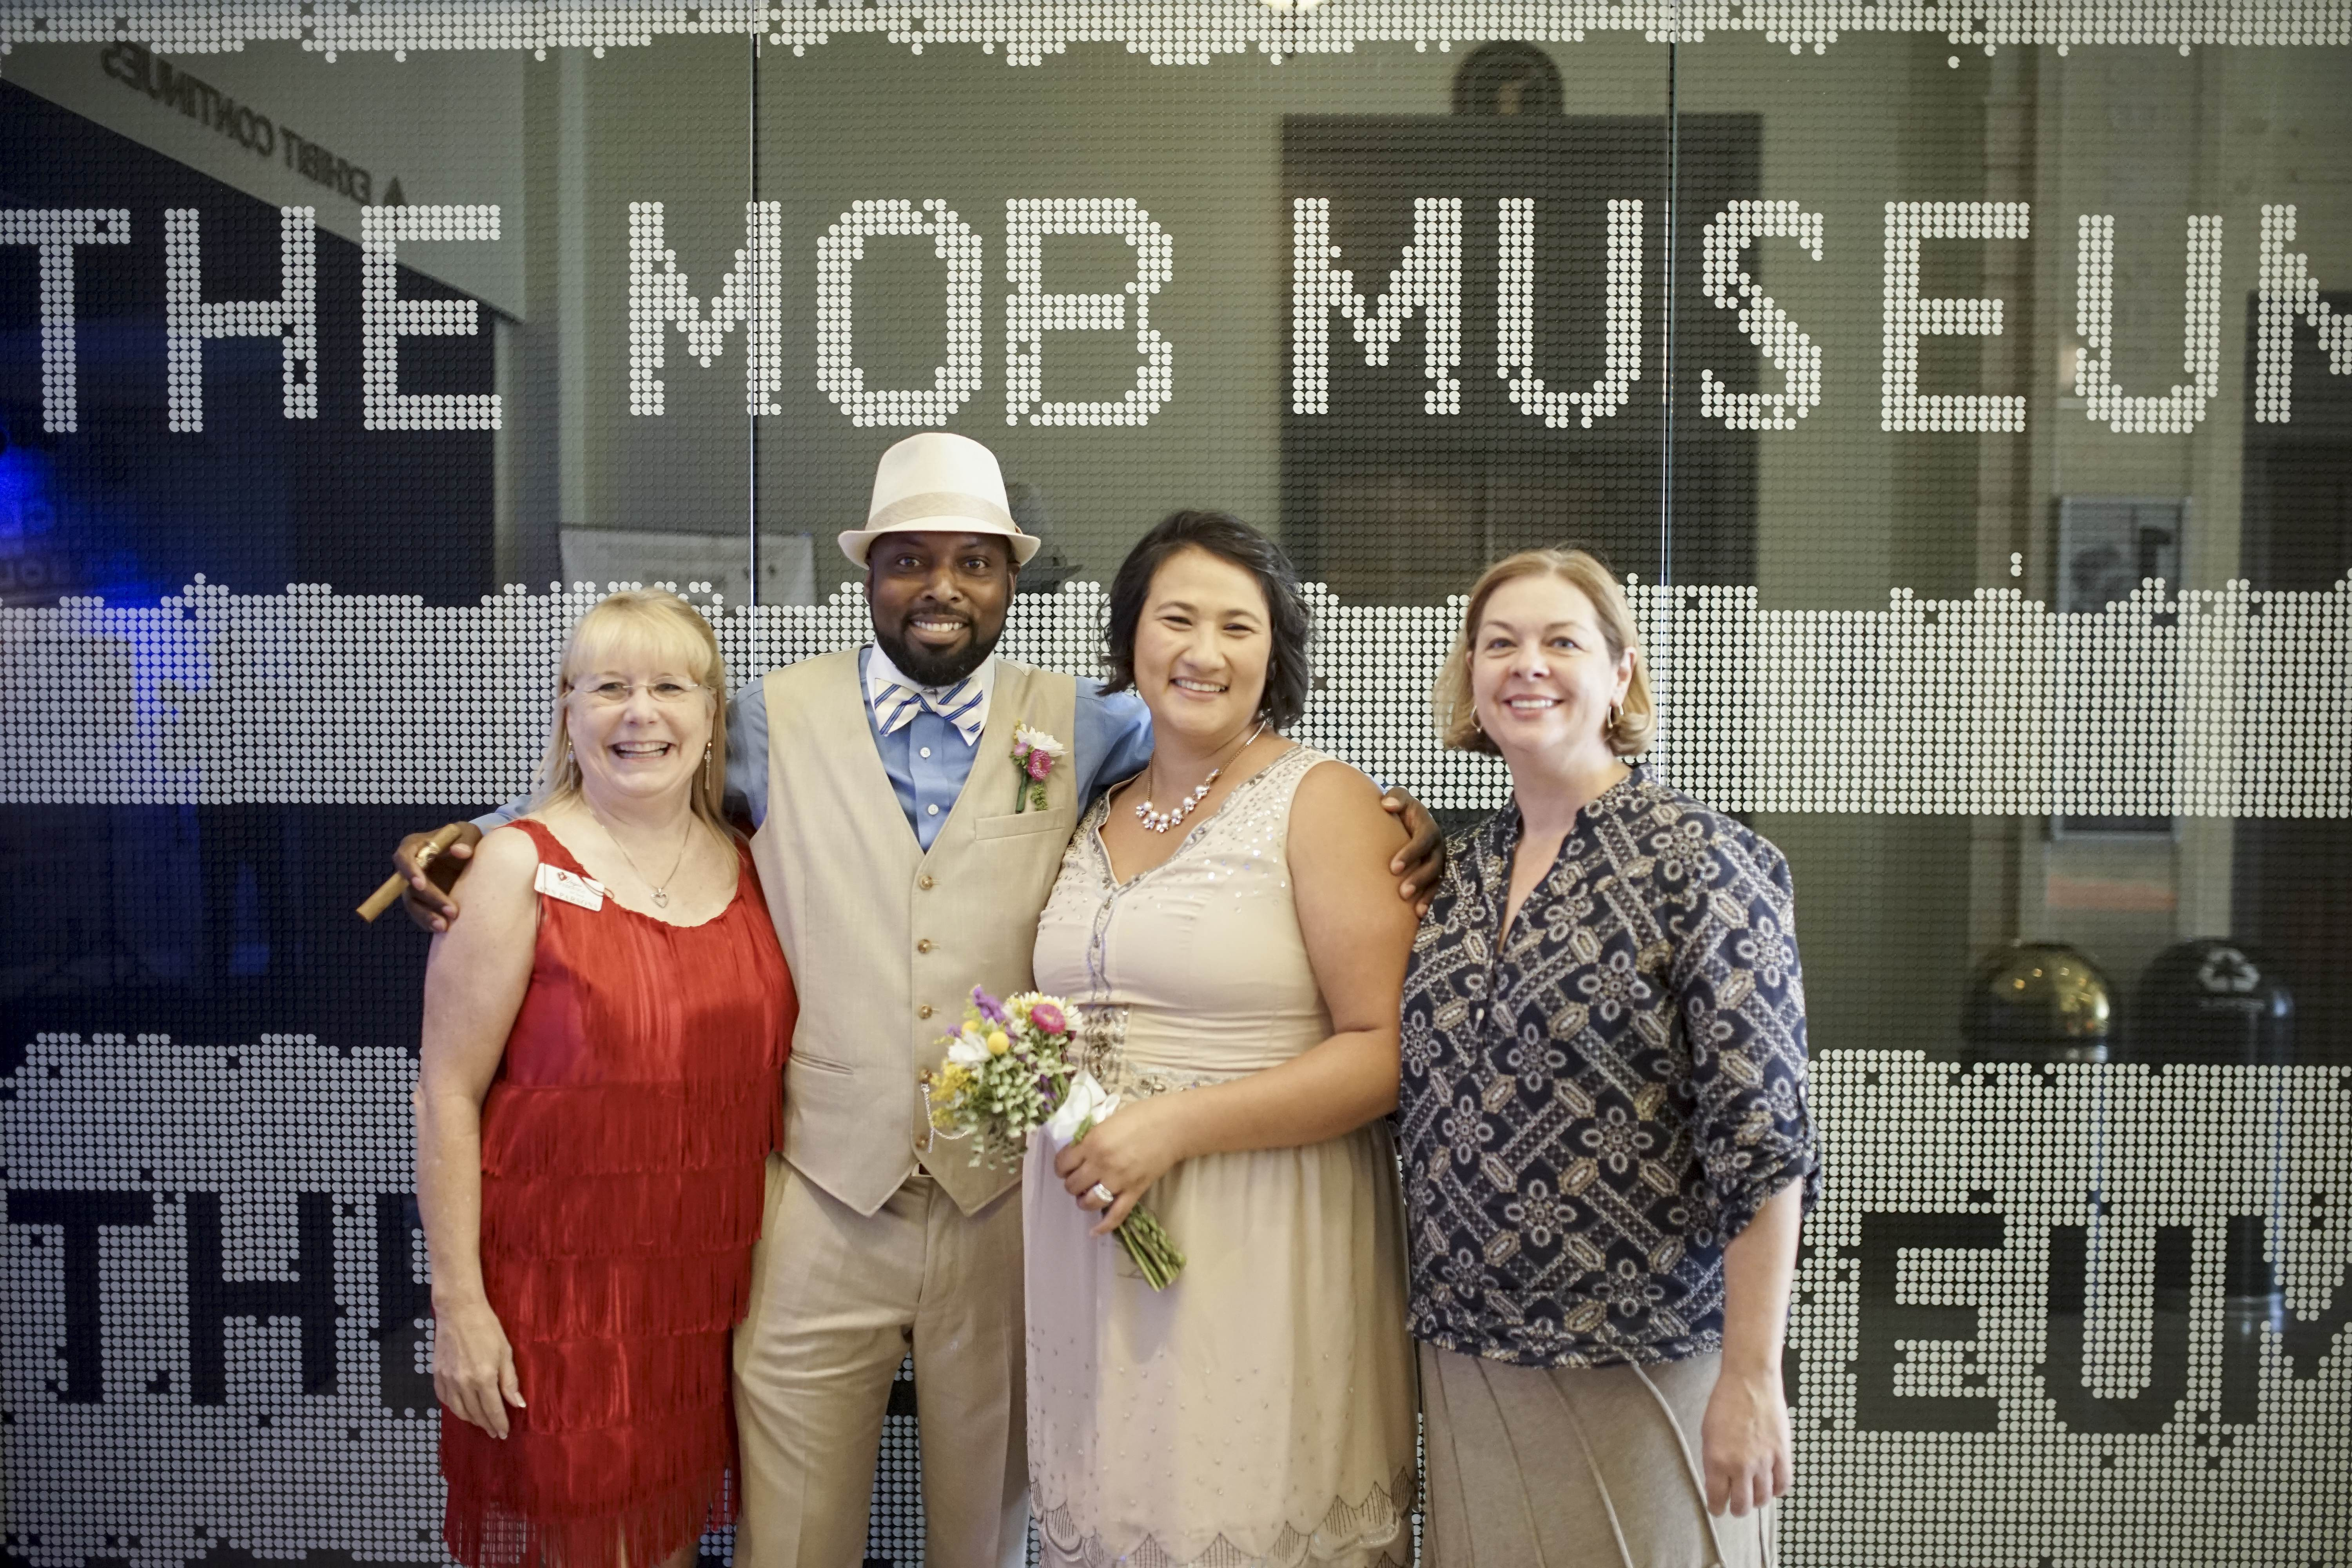 Las vegas mob wedding